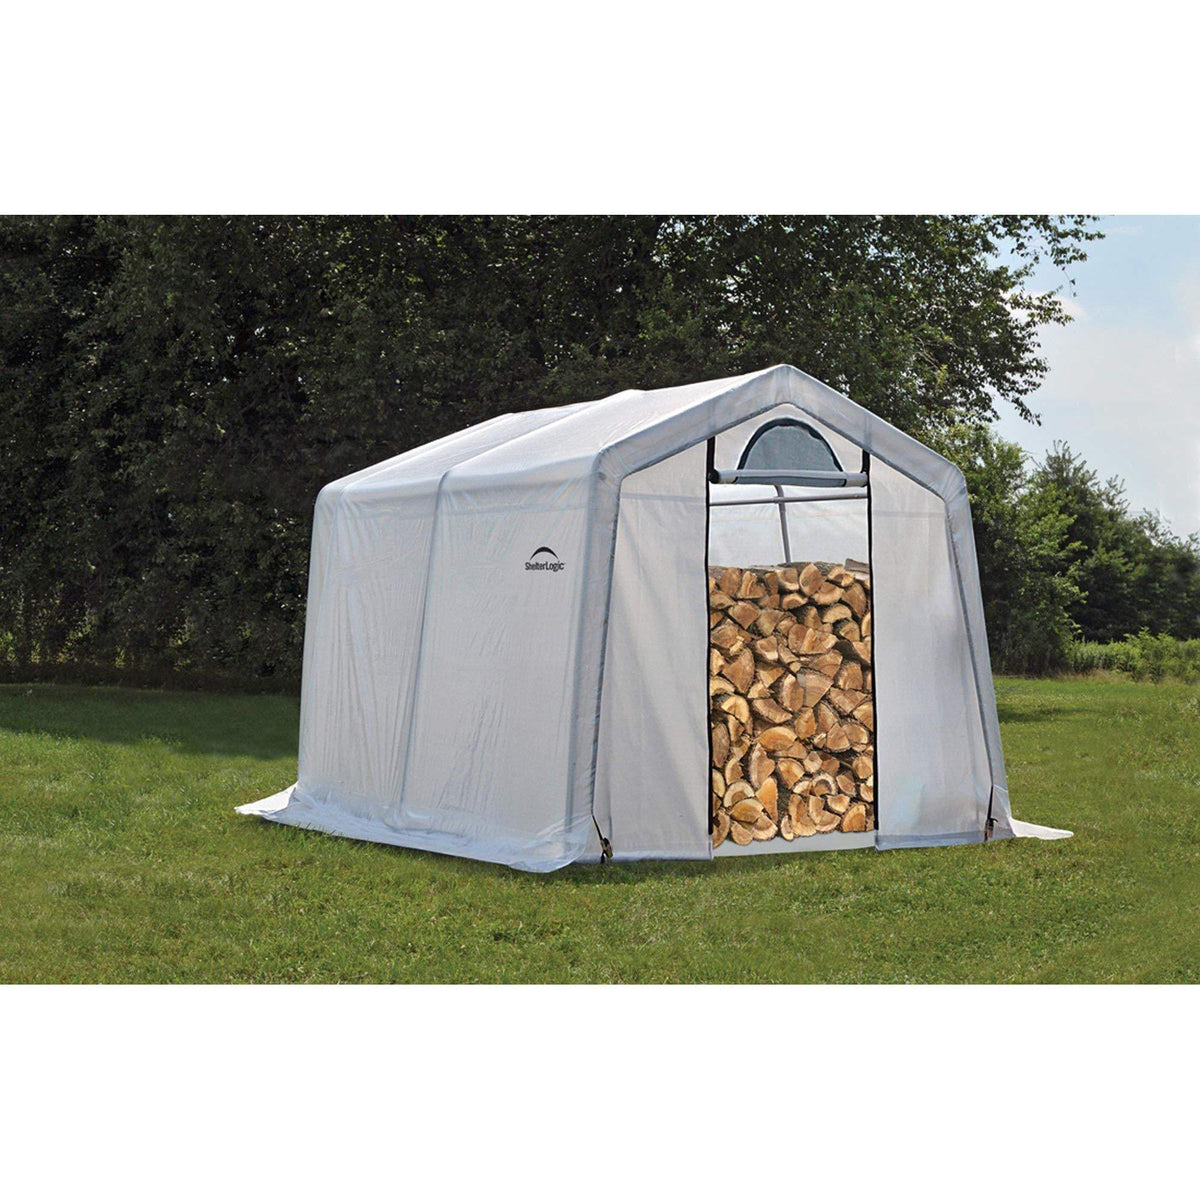 ShelterLogic Firewood Seasoning Shed, 10 x 10 x 8 ft.